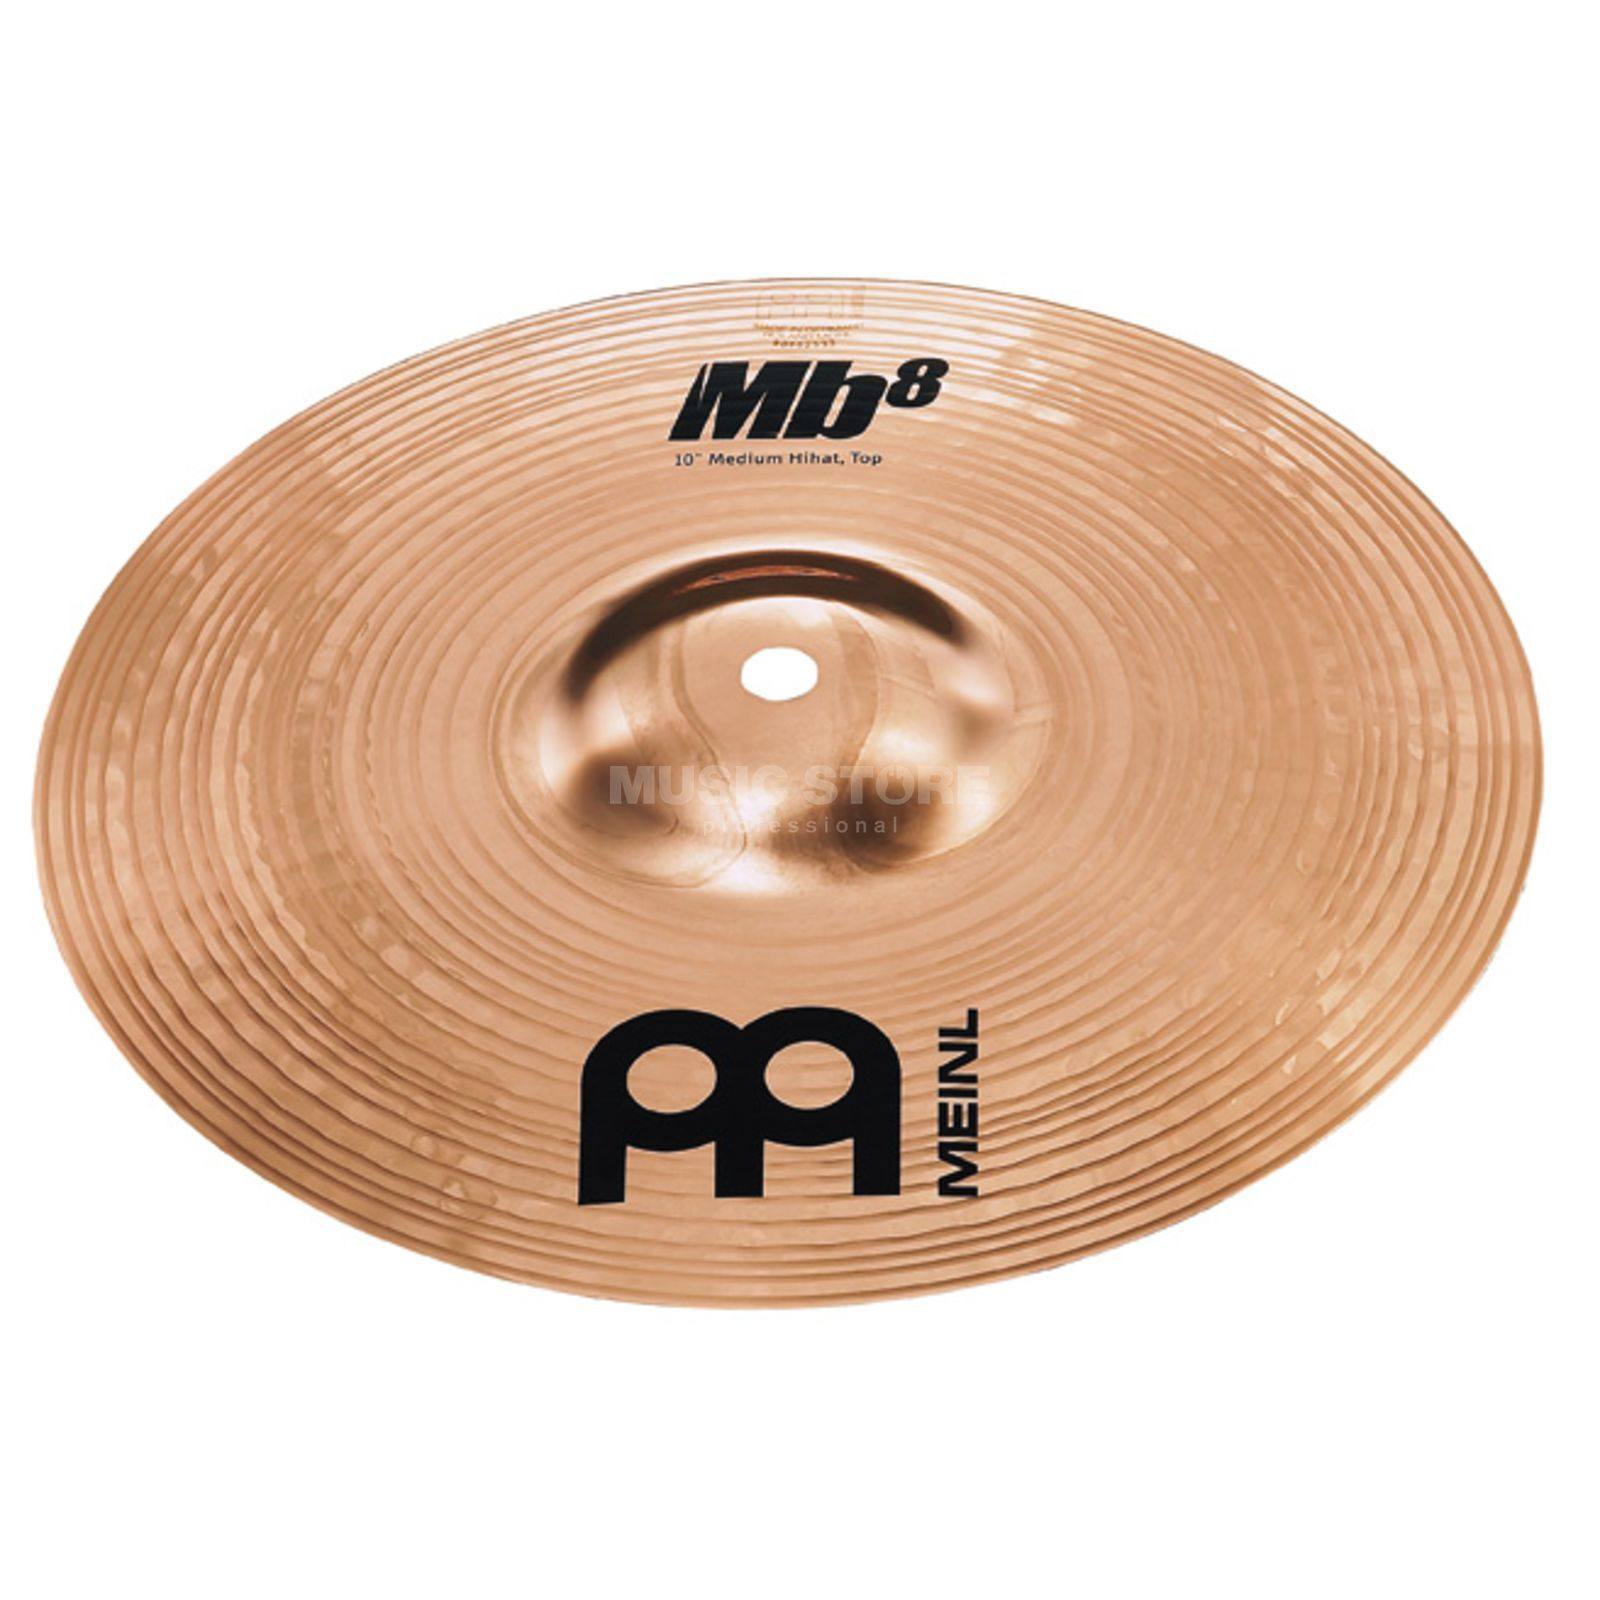 "Meinl MB8 Mini HiHat 10"", MB8-10MH-B, Brilliant Finish Produktbillede"